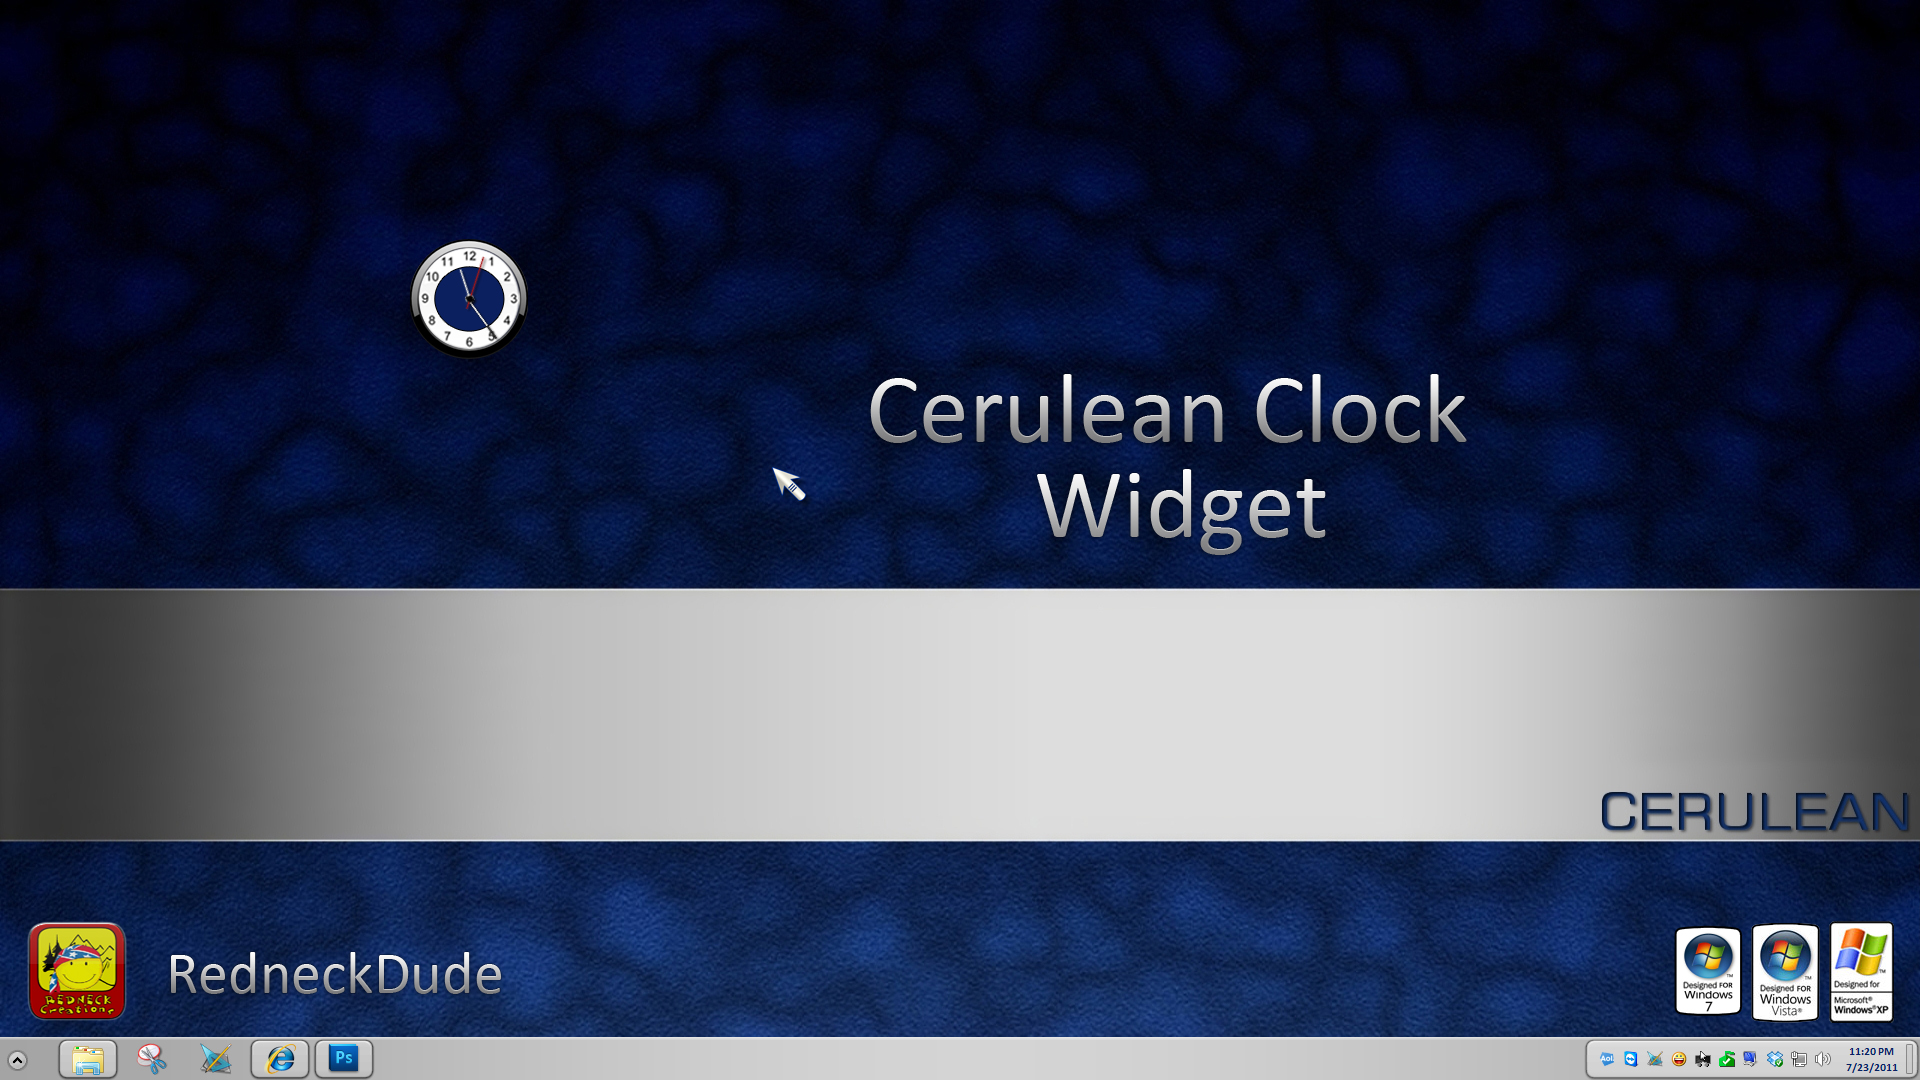 Cerulean Clock Widget